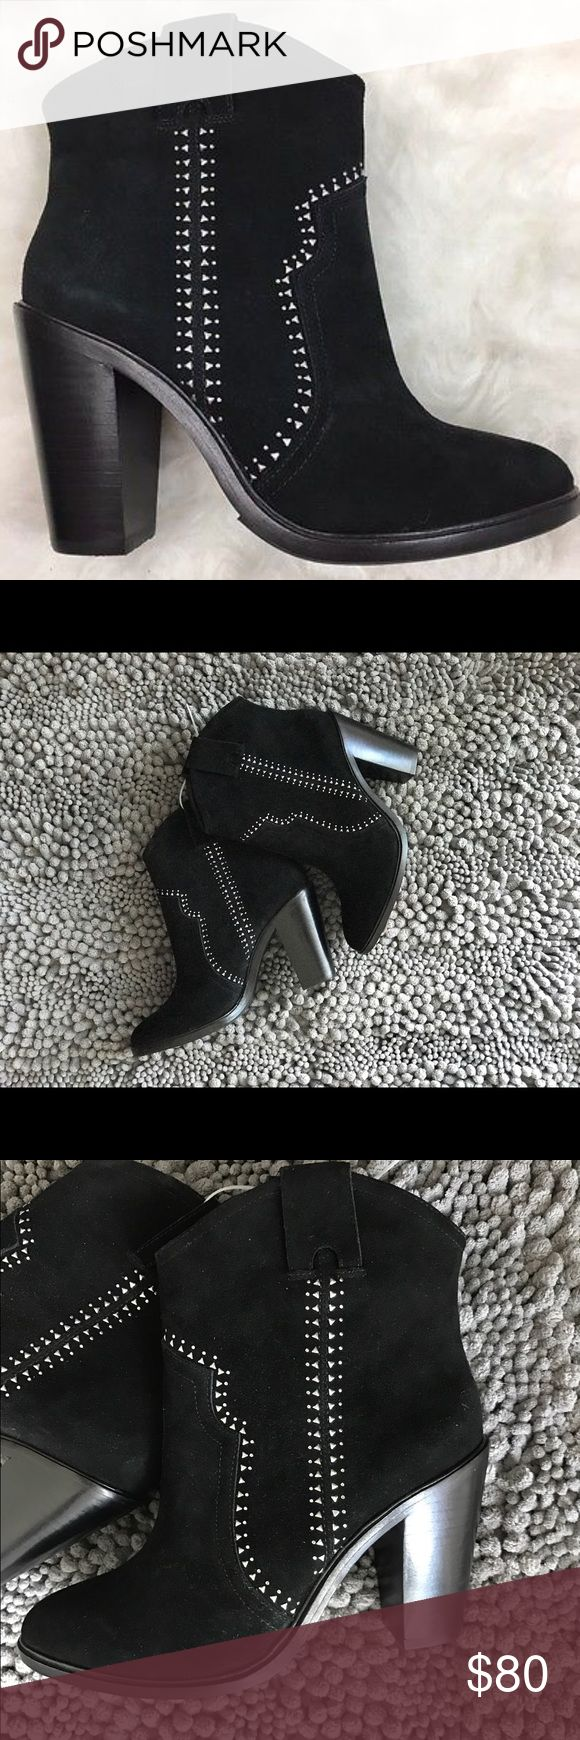 """🆕Joie - Monte Western Studded Black Suede Booties Tonal topstitching. Western-inspired silhouette. Almond toe. Lightly padded insole - 5"""" shaft height - 3.5"""" heel height Joie Shoes Ankle Boots & Booties"""